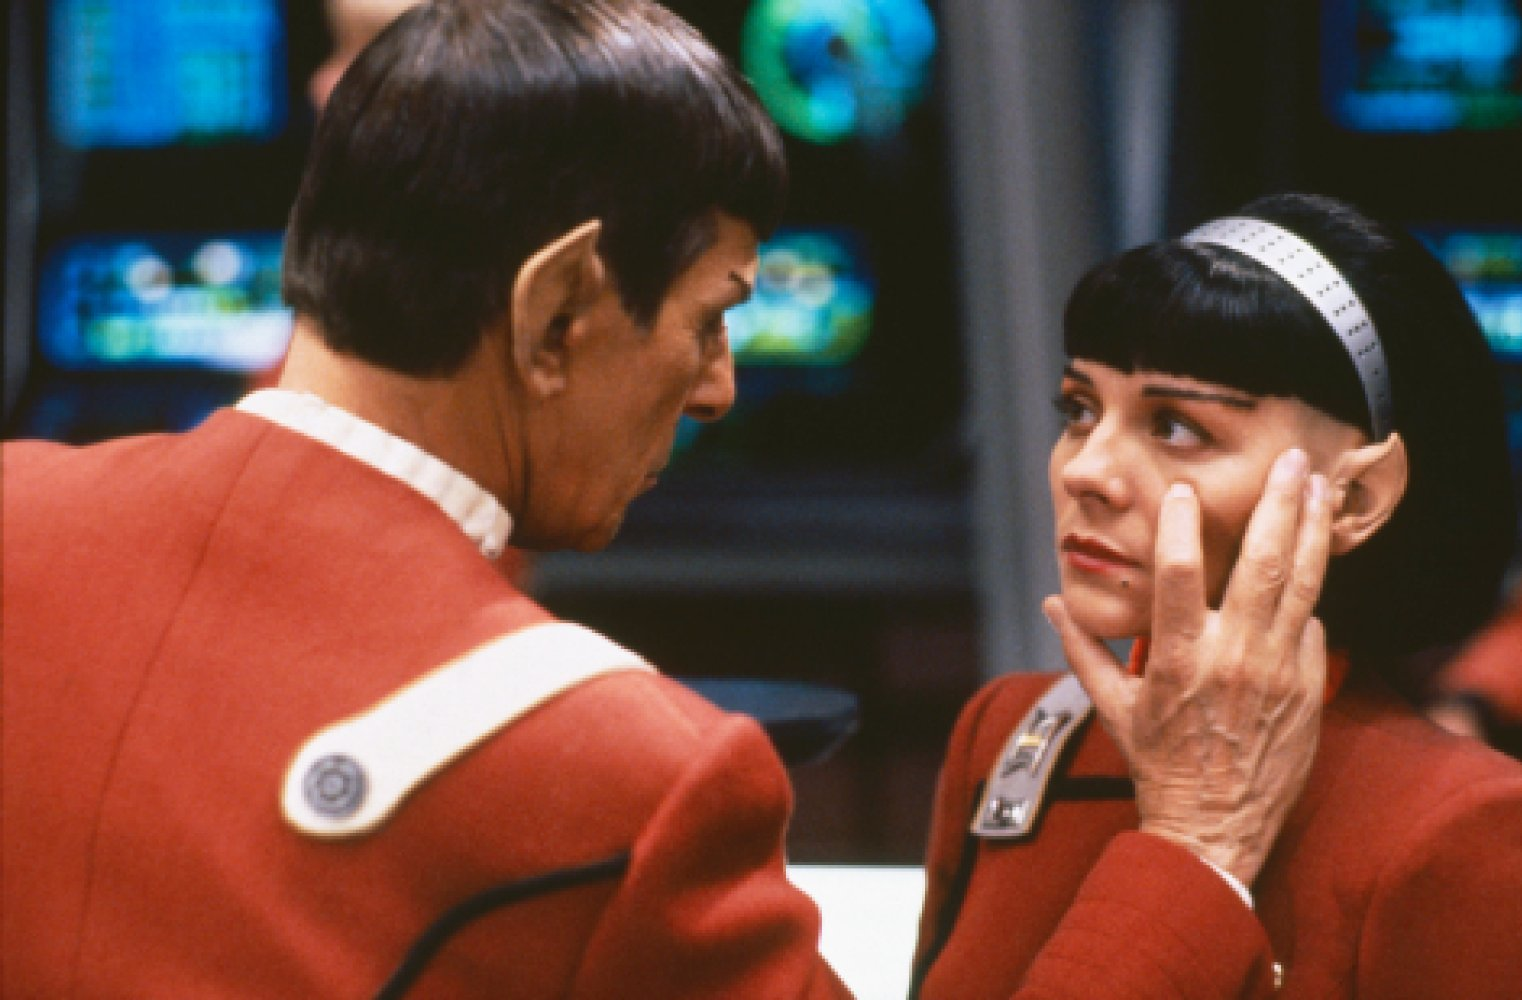 Star Trek VI The Undiscovered Country 1991 BRRip 720p-77